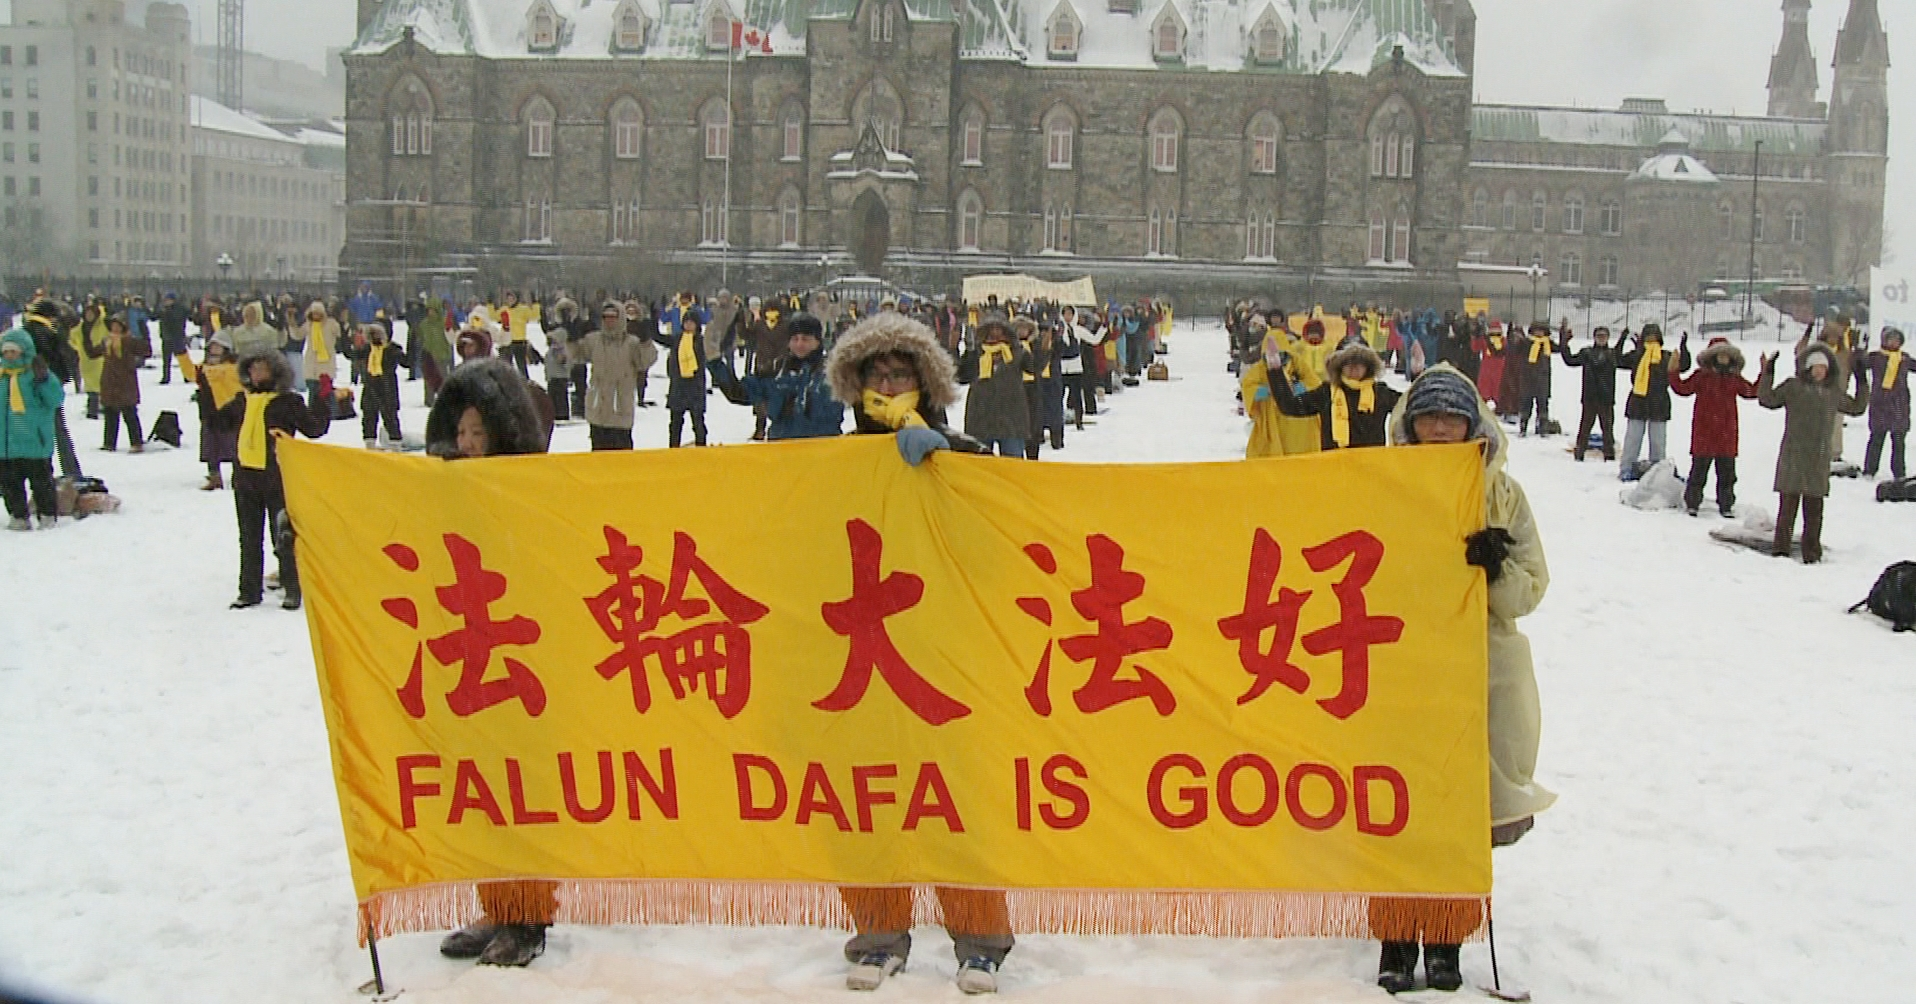 The crackdown of falun gong in china essay